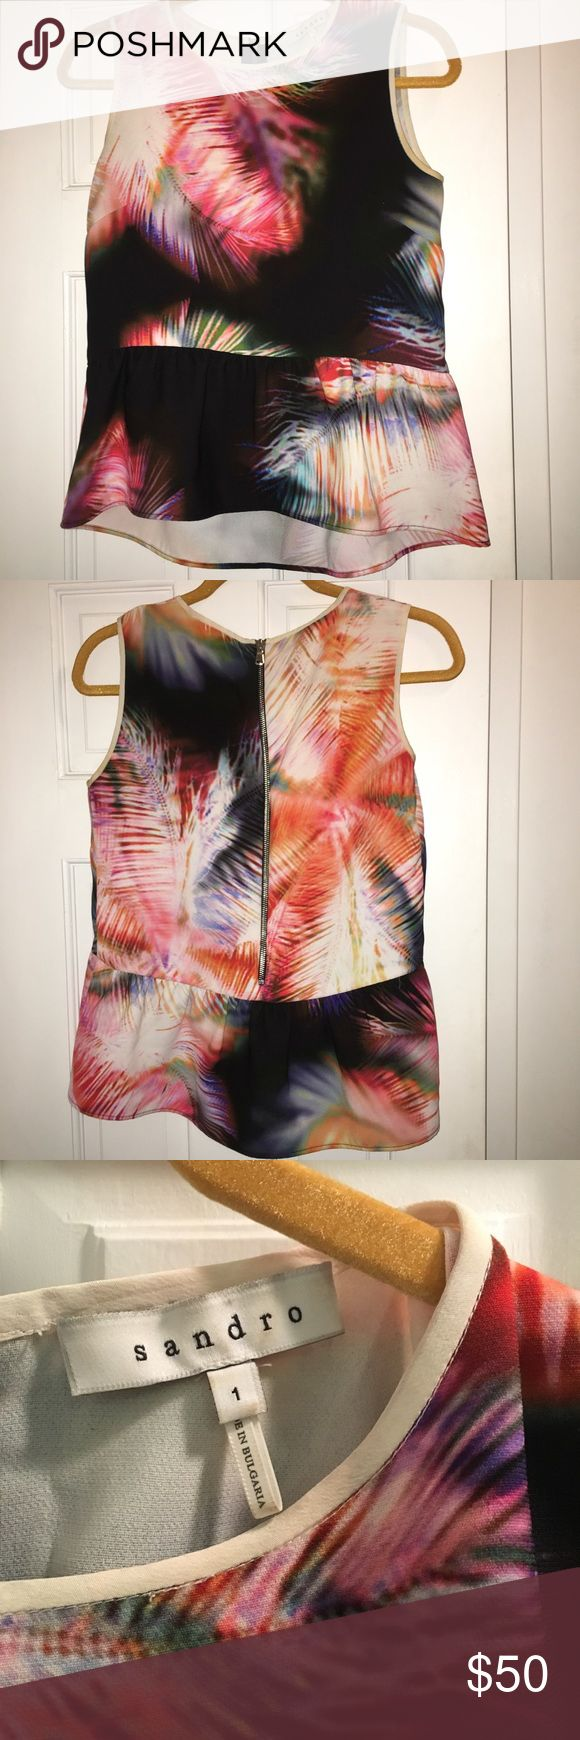 Sandro Peplum Top, Size 1/Small Sandro loose fitting peplum top in black/pink multicolor pattern. Size 1 = small Sandro Tops Blouses